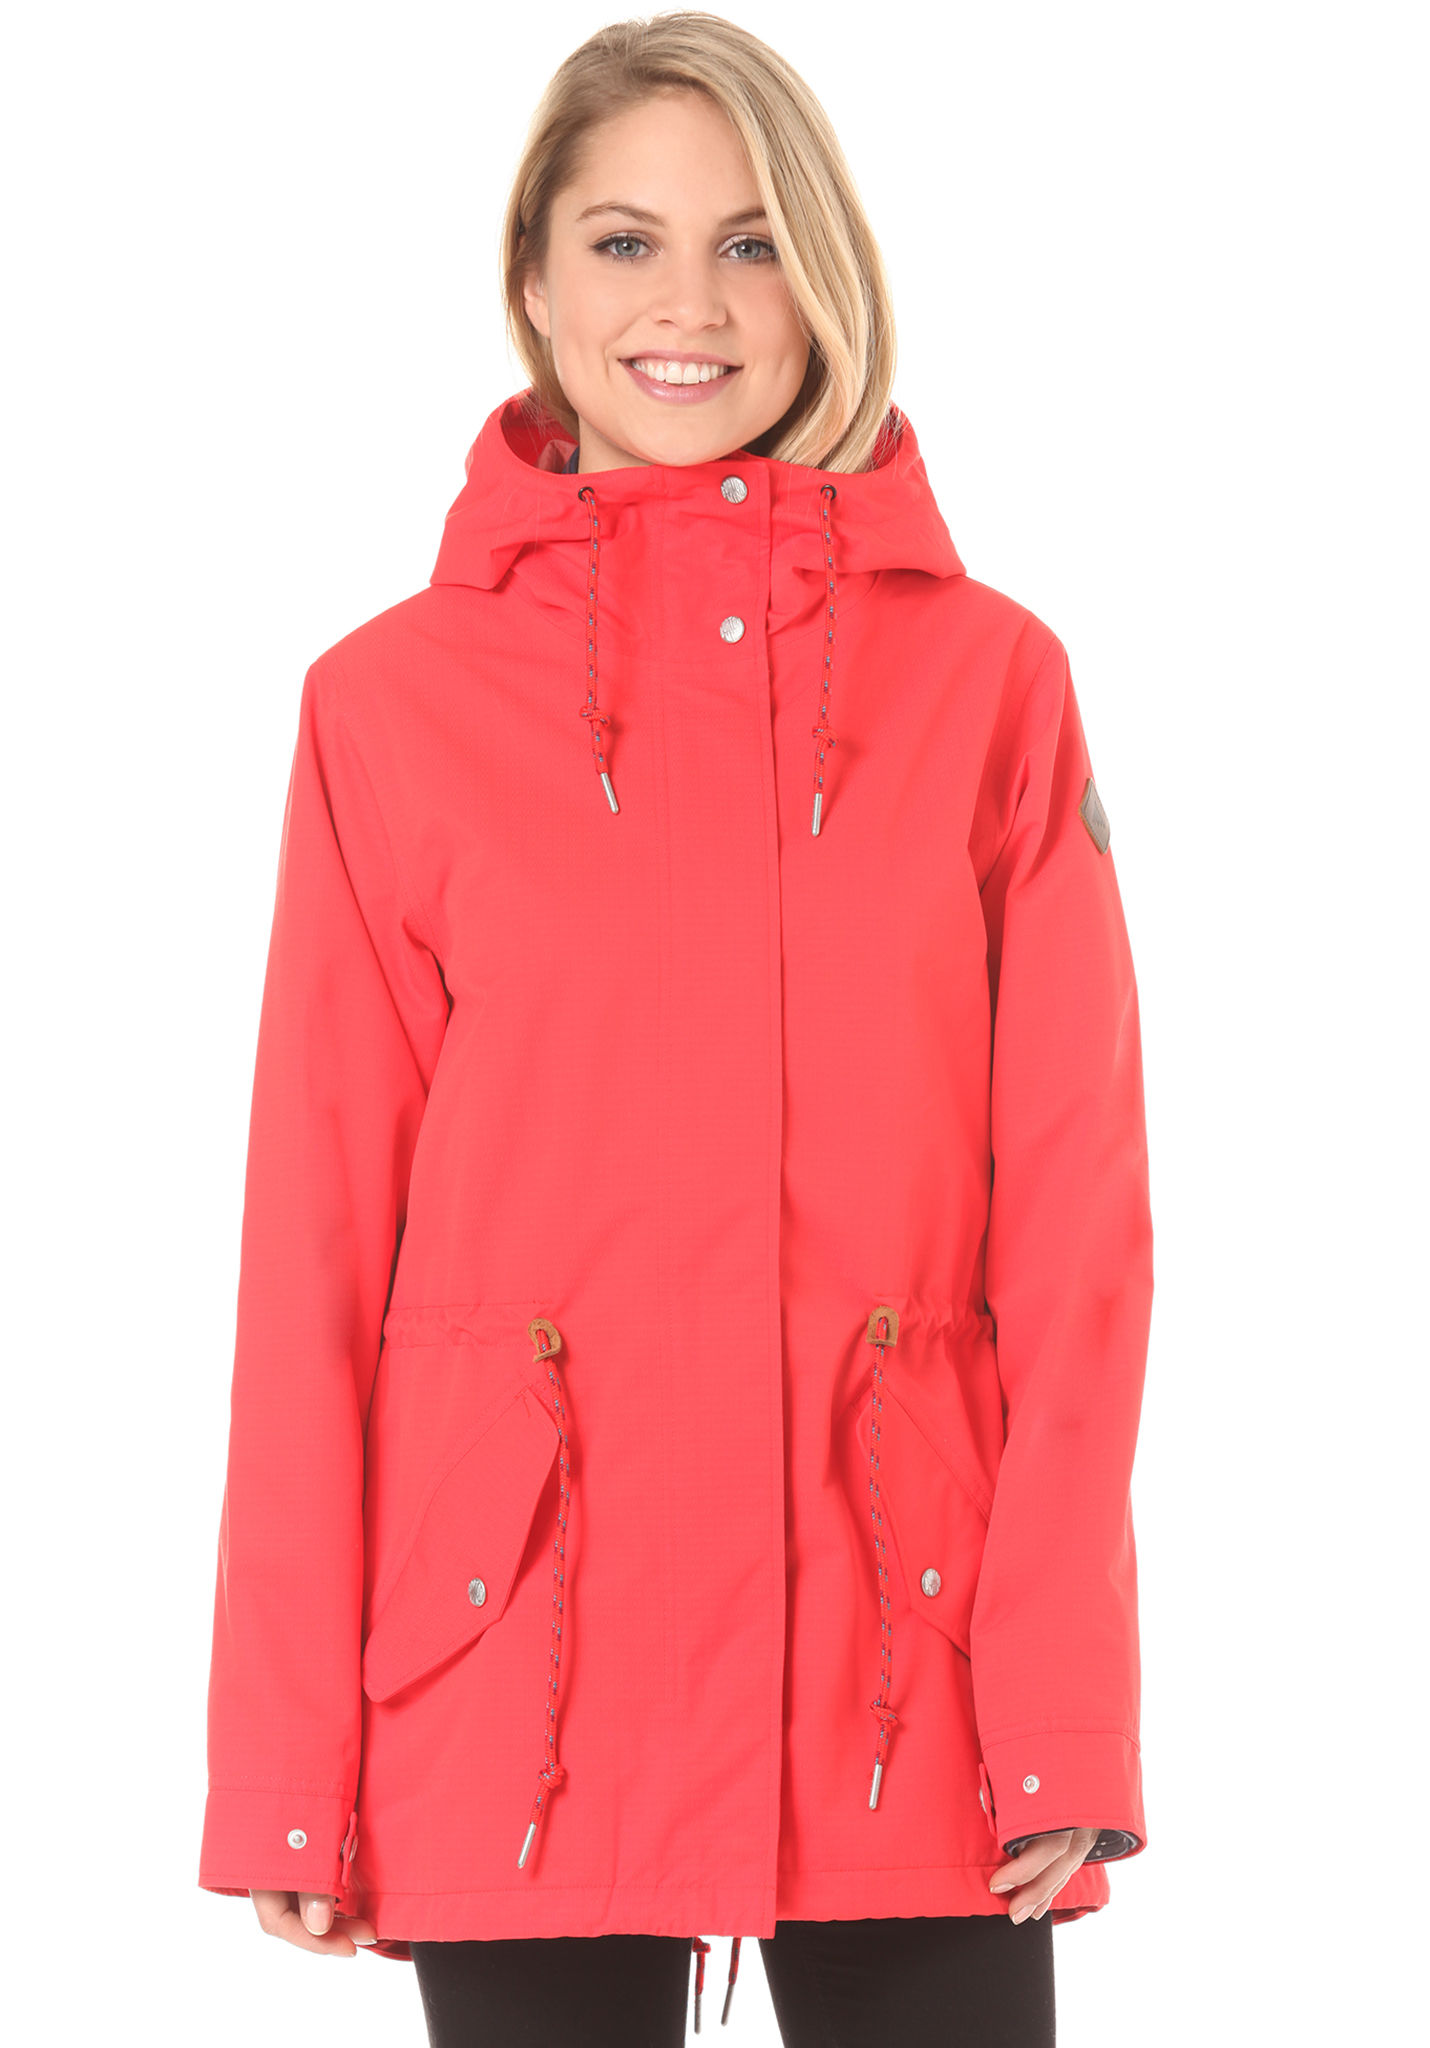 Burton Sadie 2L - Functional Jacket for Women - Red - Planet Sports 71182d4d56